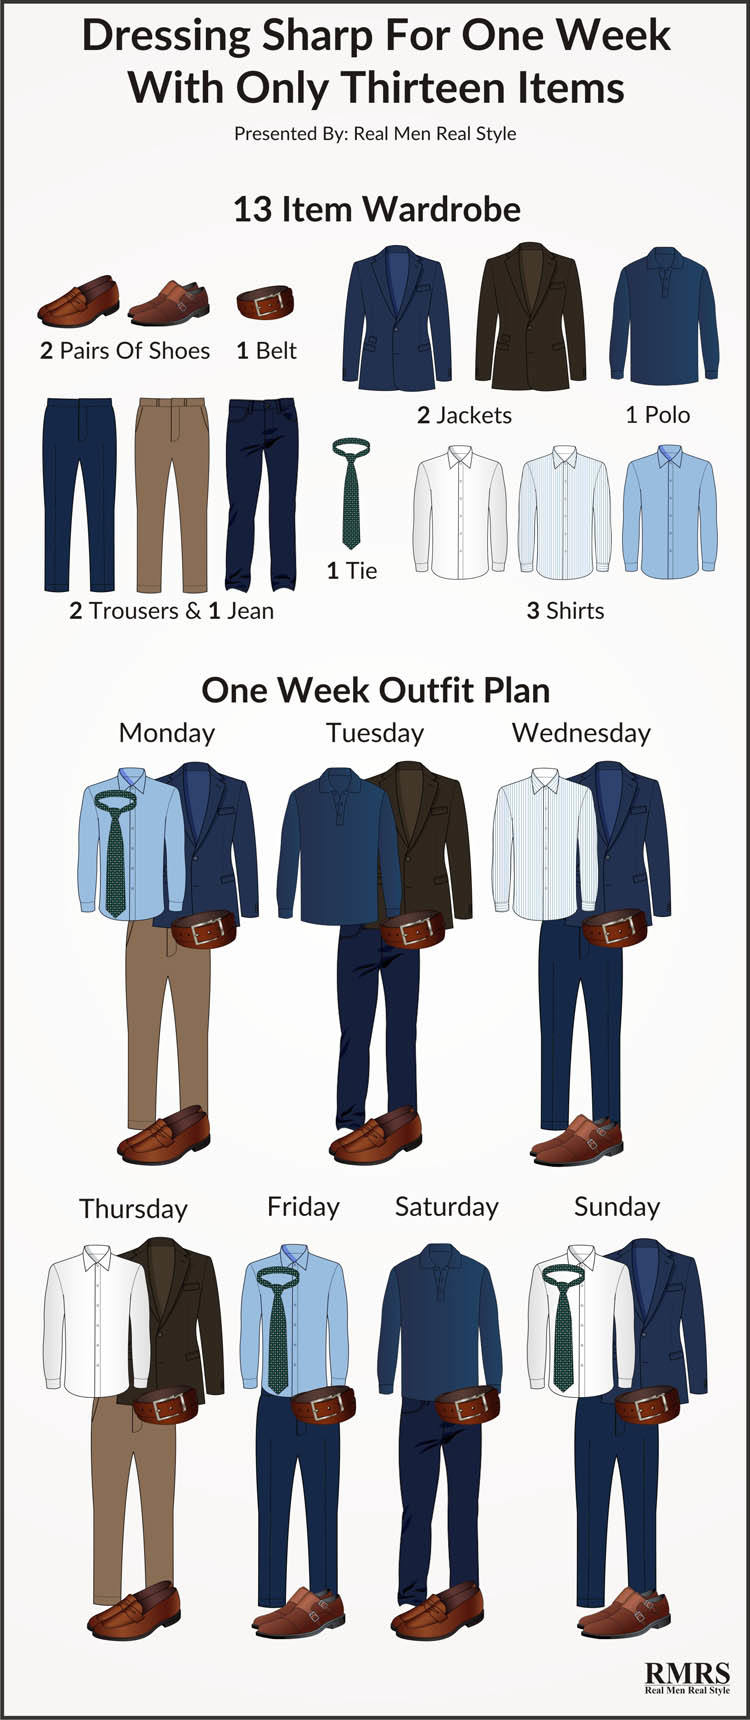 RMRS One Week Outfit Plan